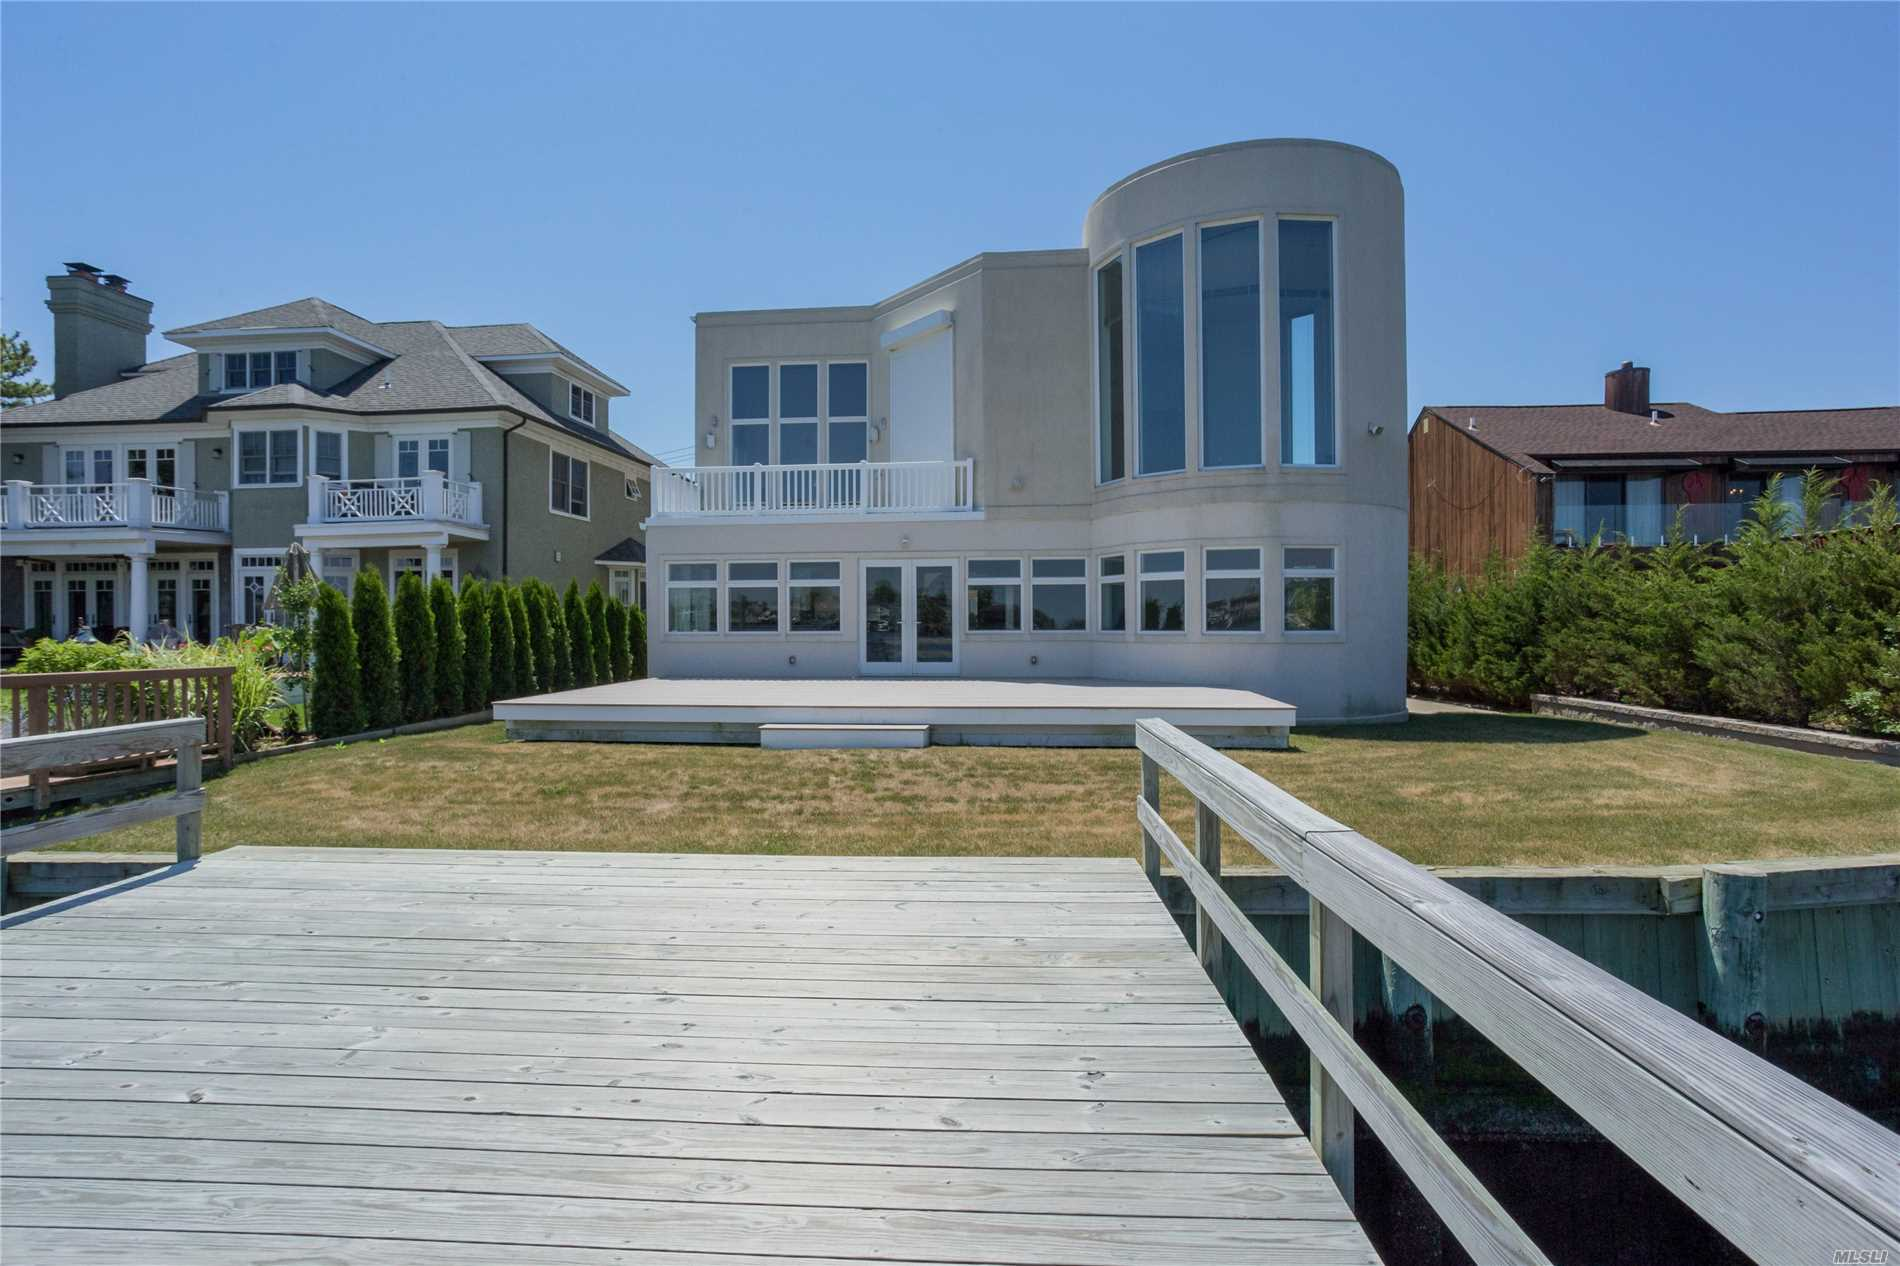 505 E Bay Dr - Long Beach, New York